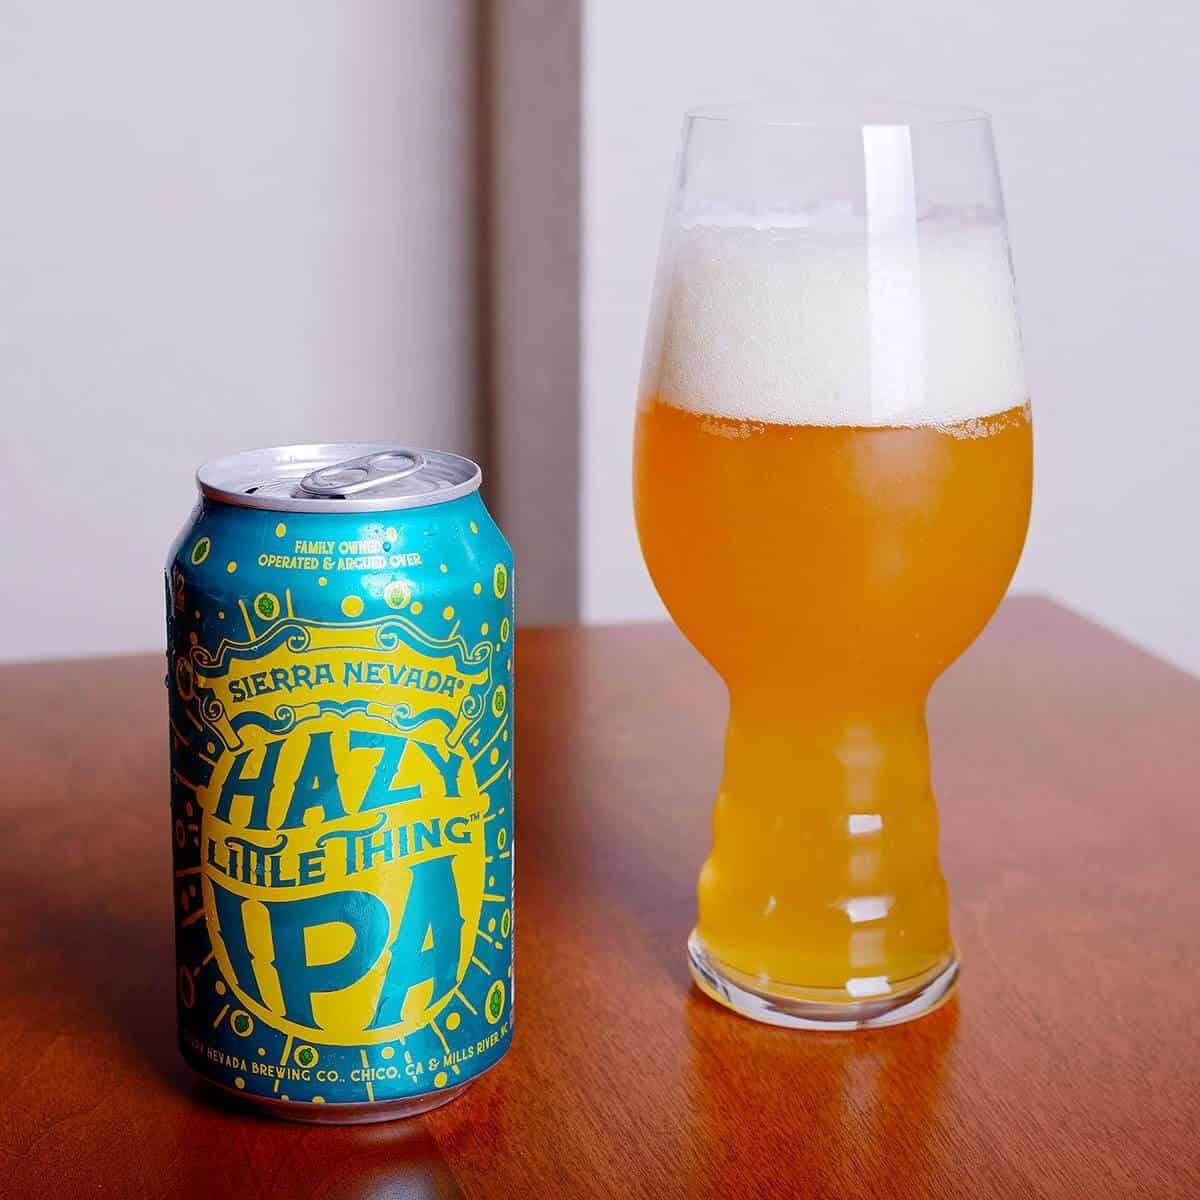 The Can of Hazy Little Thing IPA